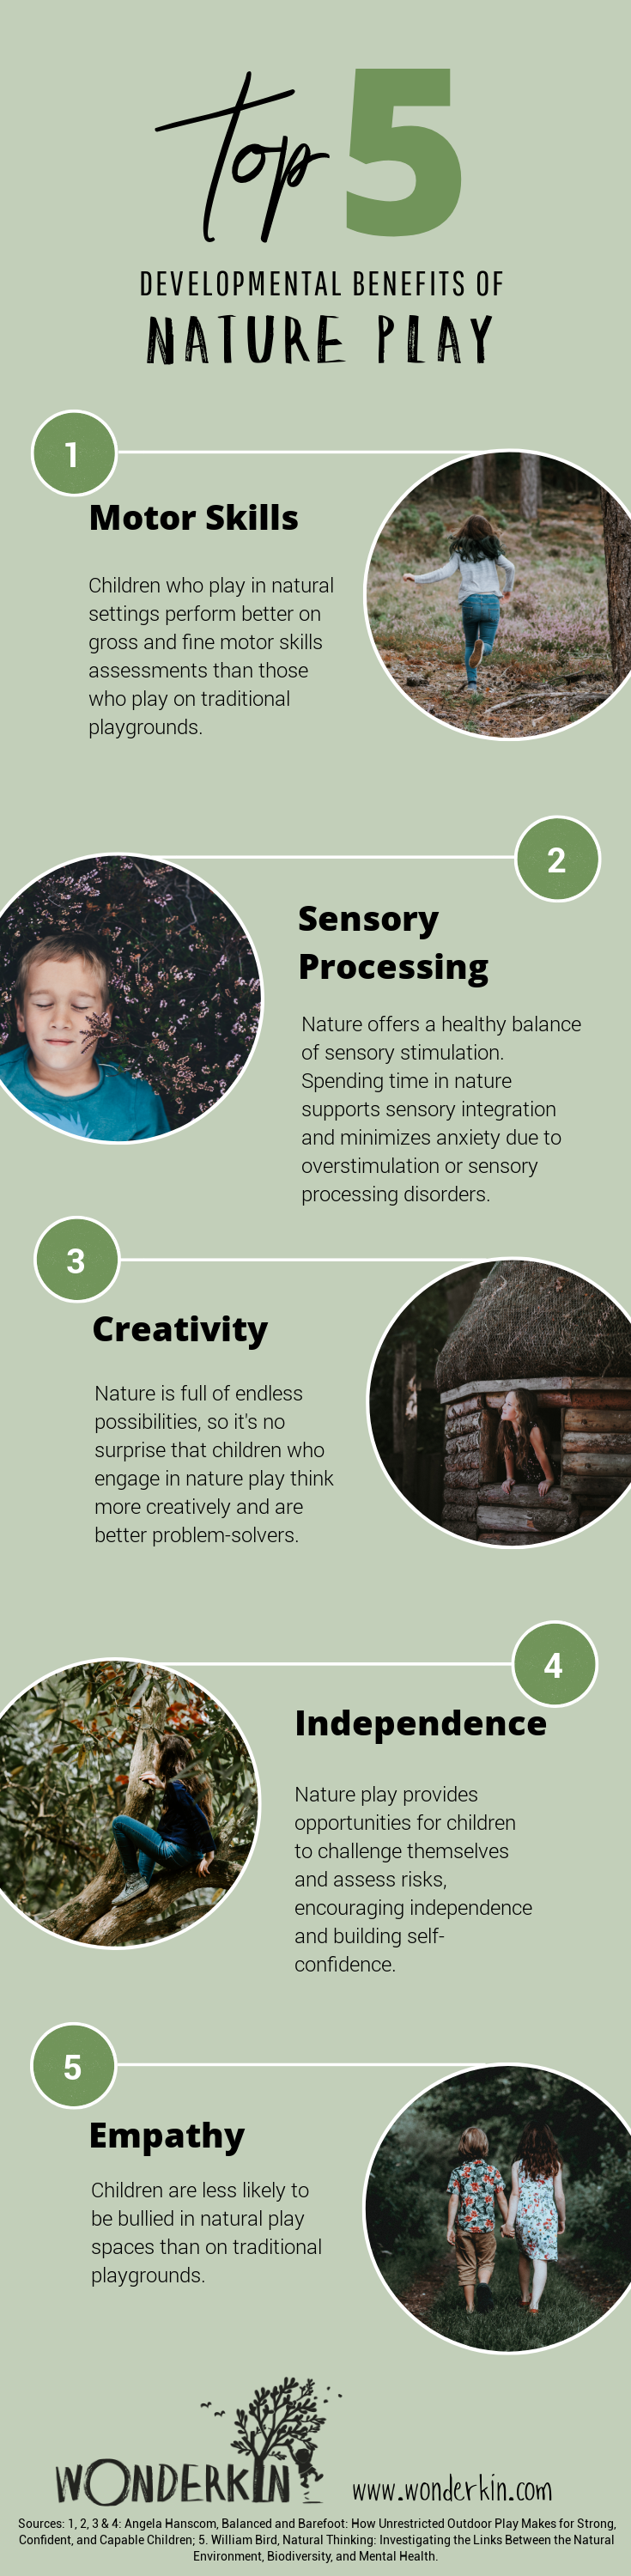 Wonderkin | Top 5 Developmental Benefits of Nature Play